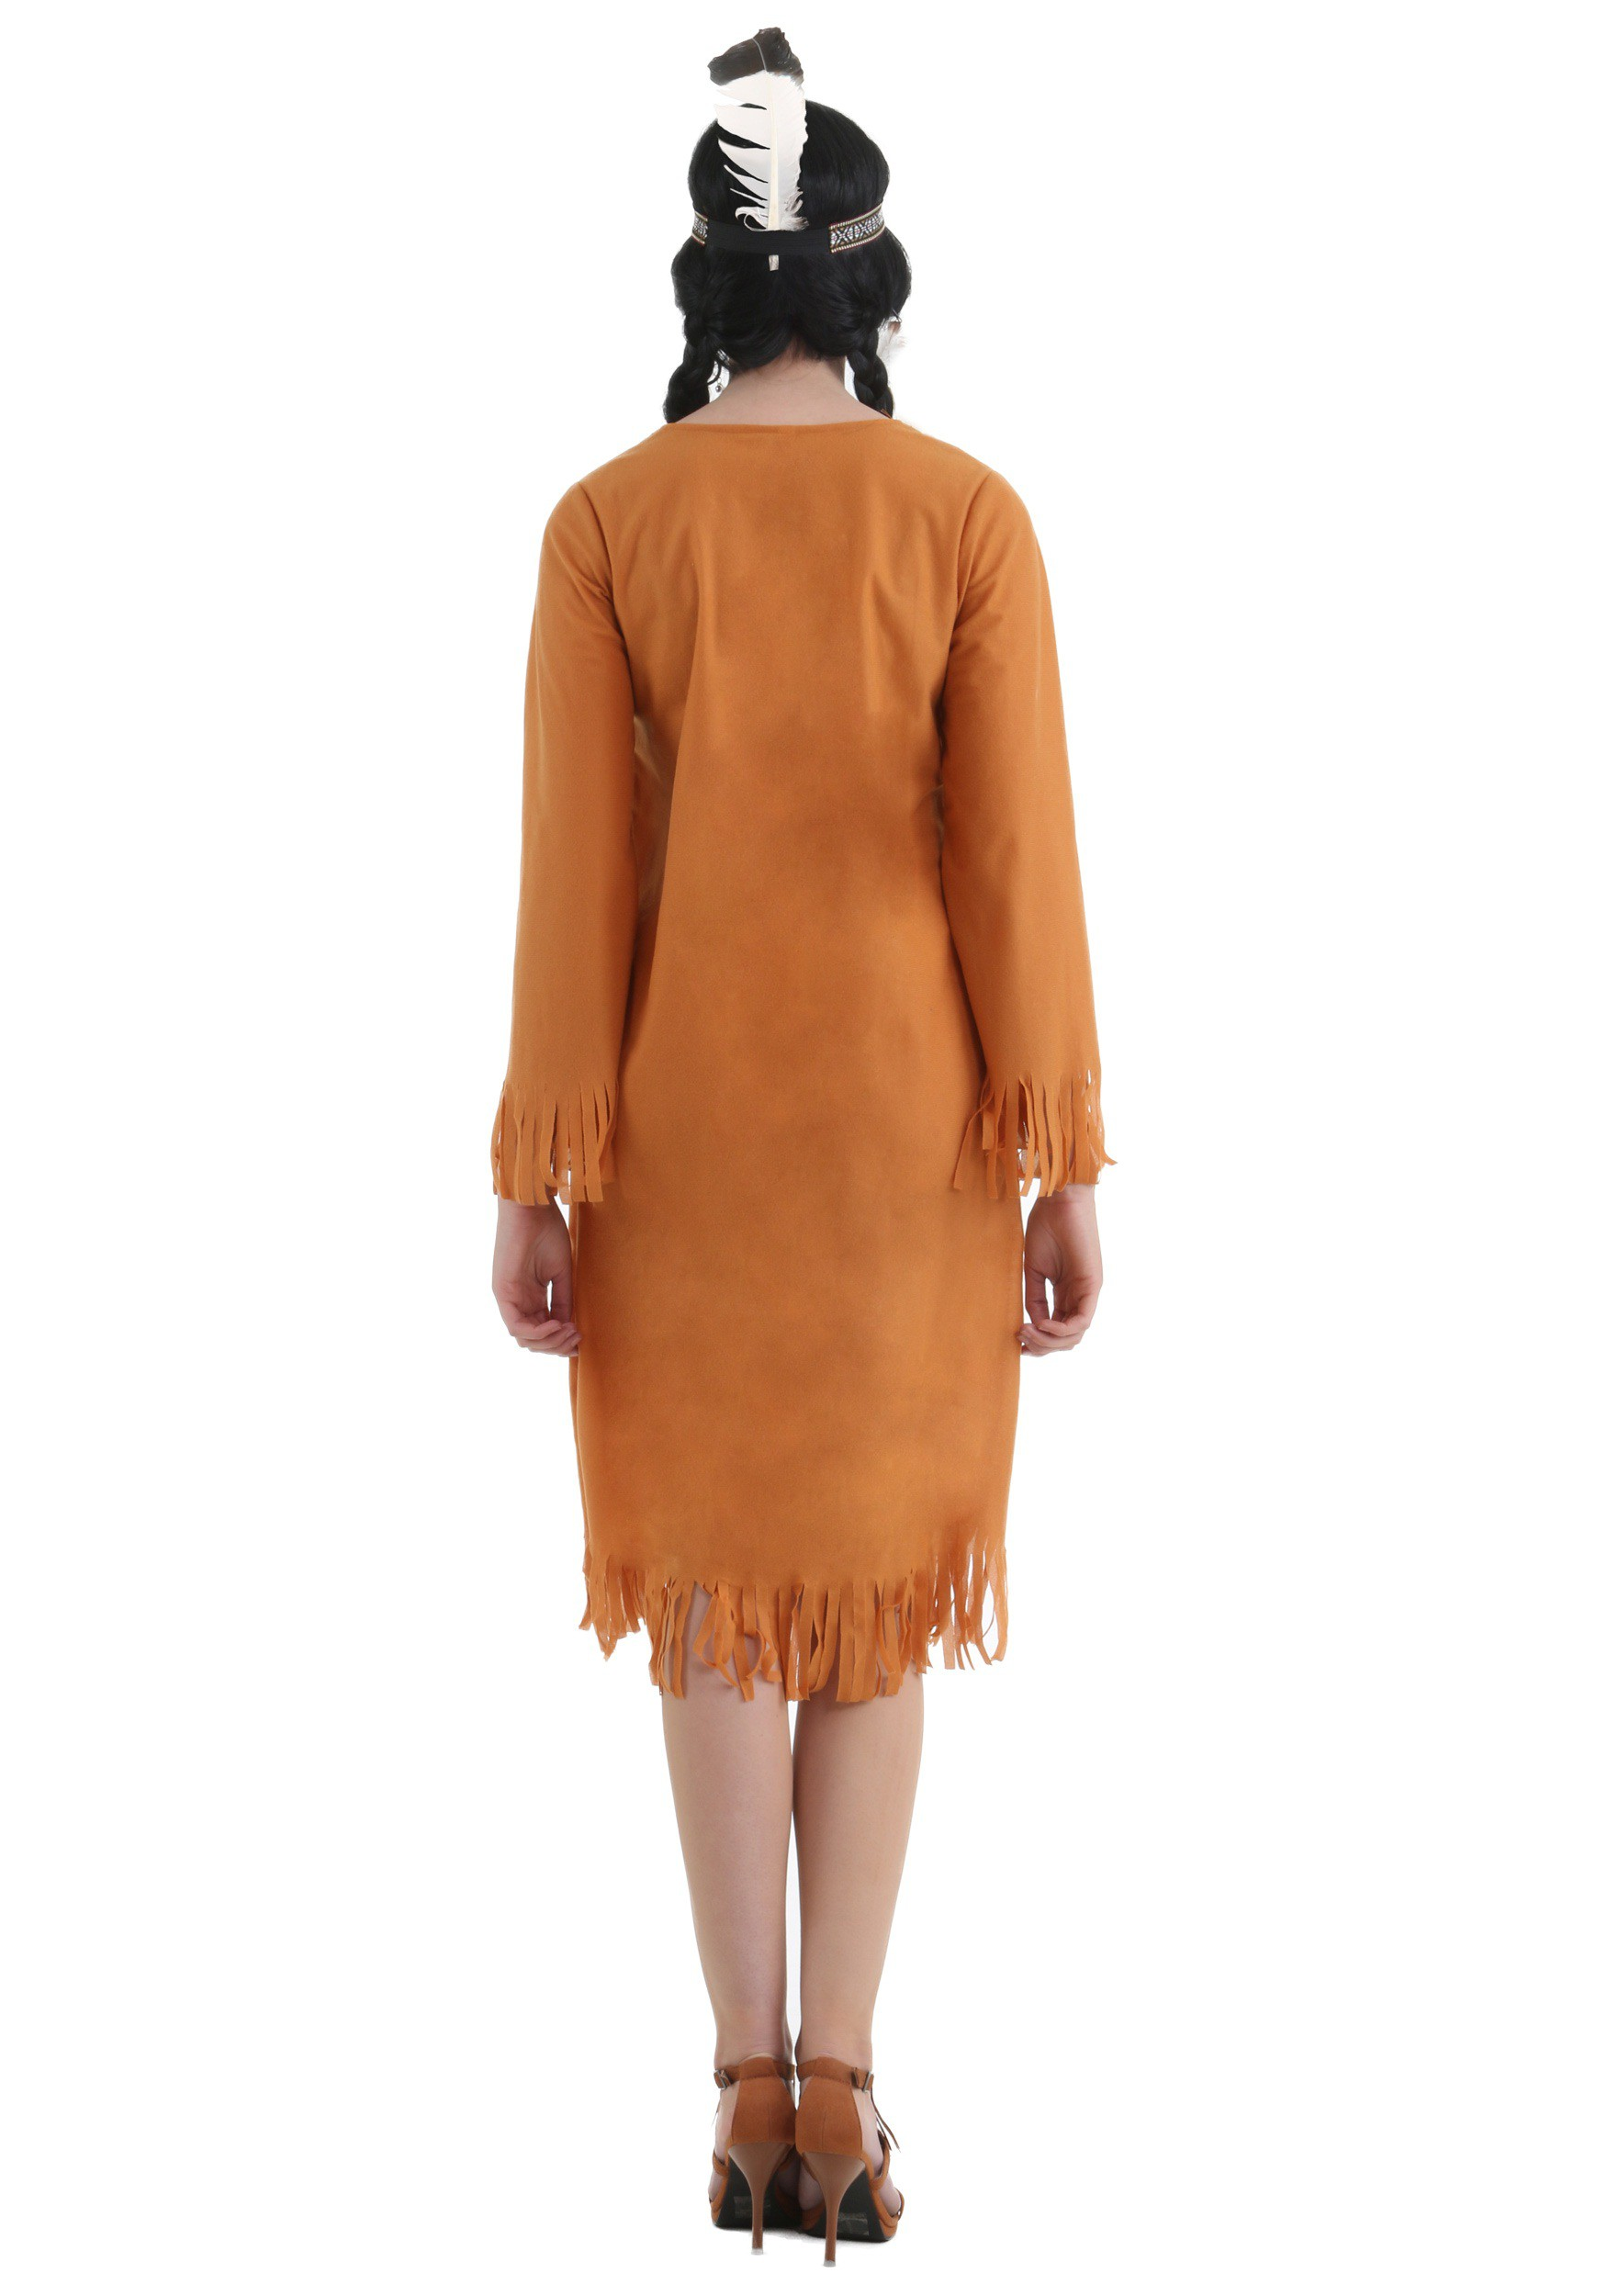 Plus Size Native American Dress Costume-4954